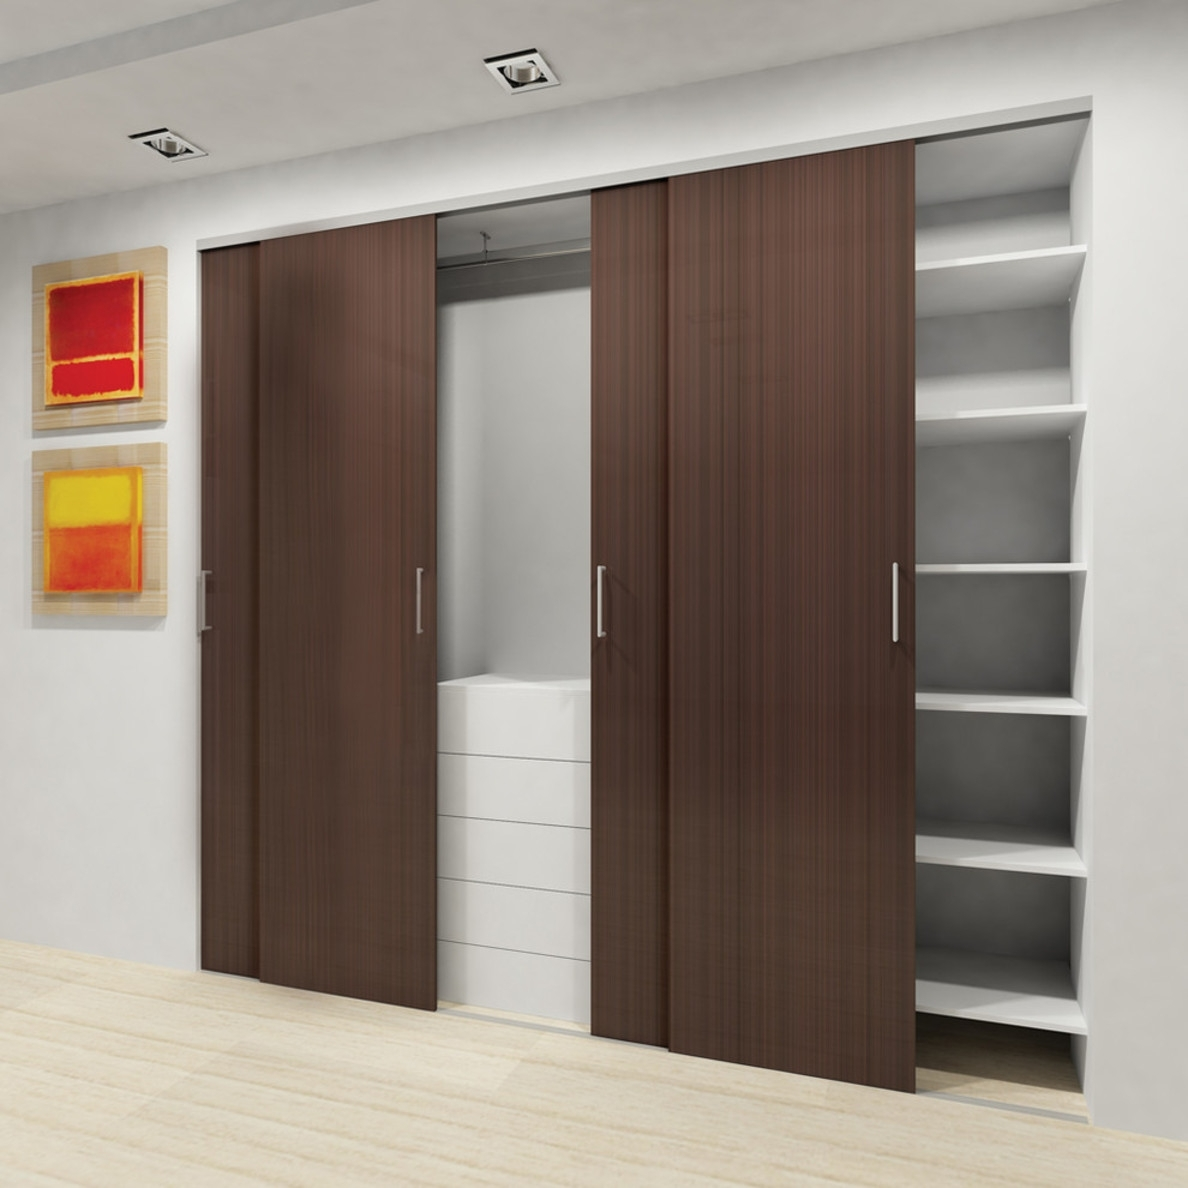 Bedroom Closet Doors Ideas Randolph Indoor And Outdoor Design